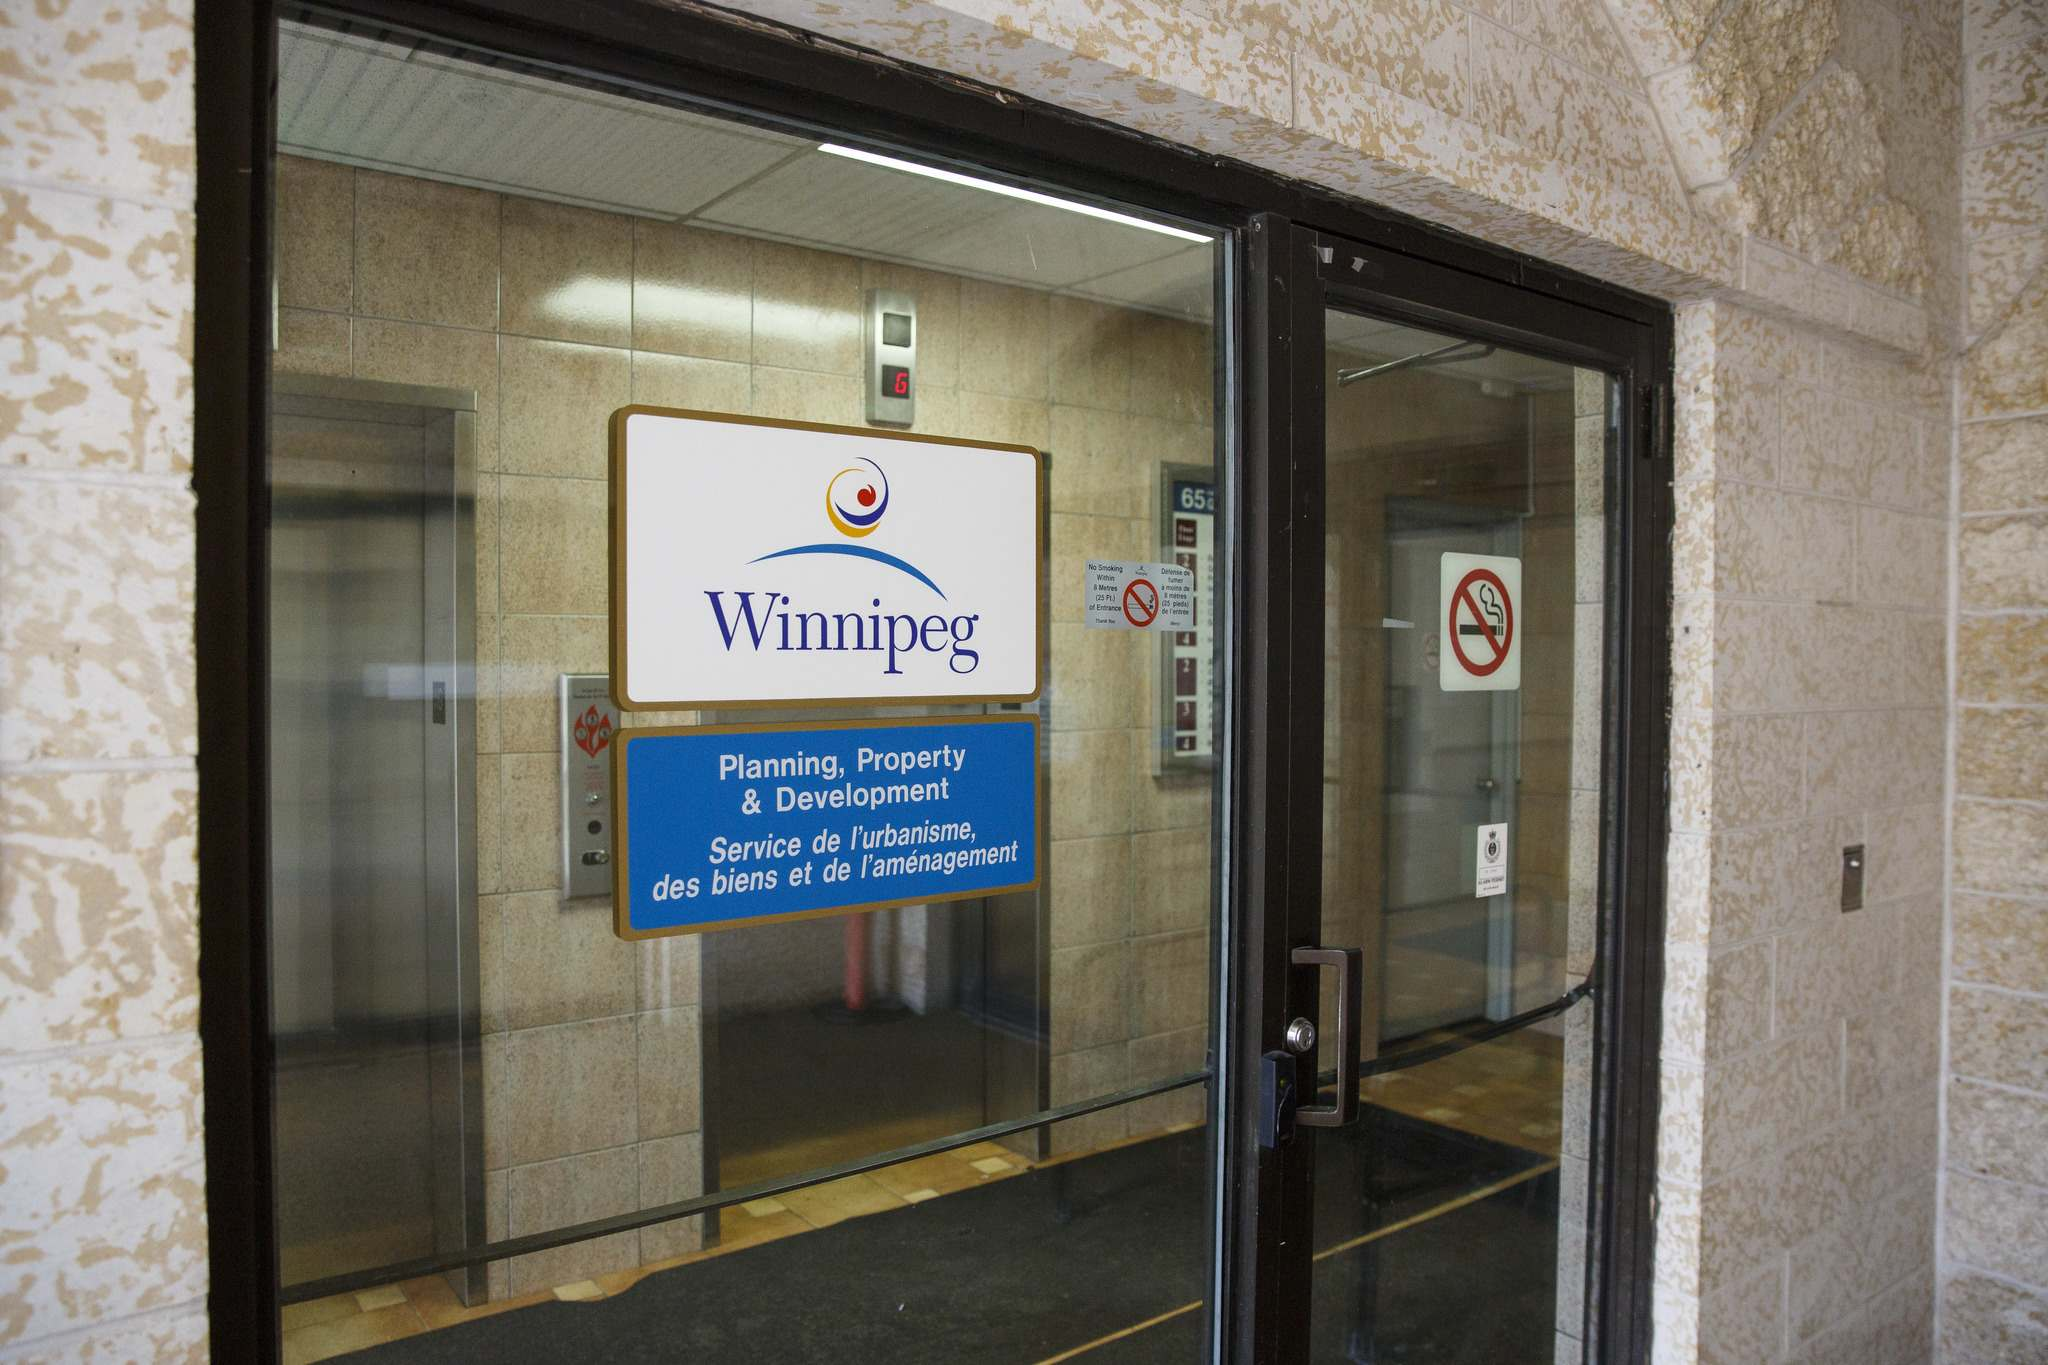 MIKE DEAL / WINNIPEG FREE PRESS </p><p>The City of Winnipeg planning, property and development offices at 65 Garry Street.</p>